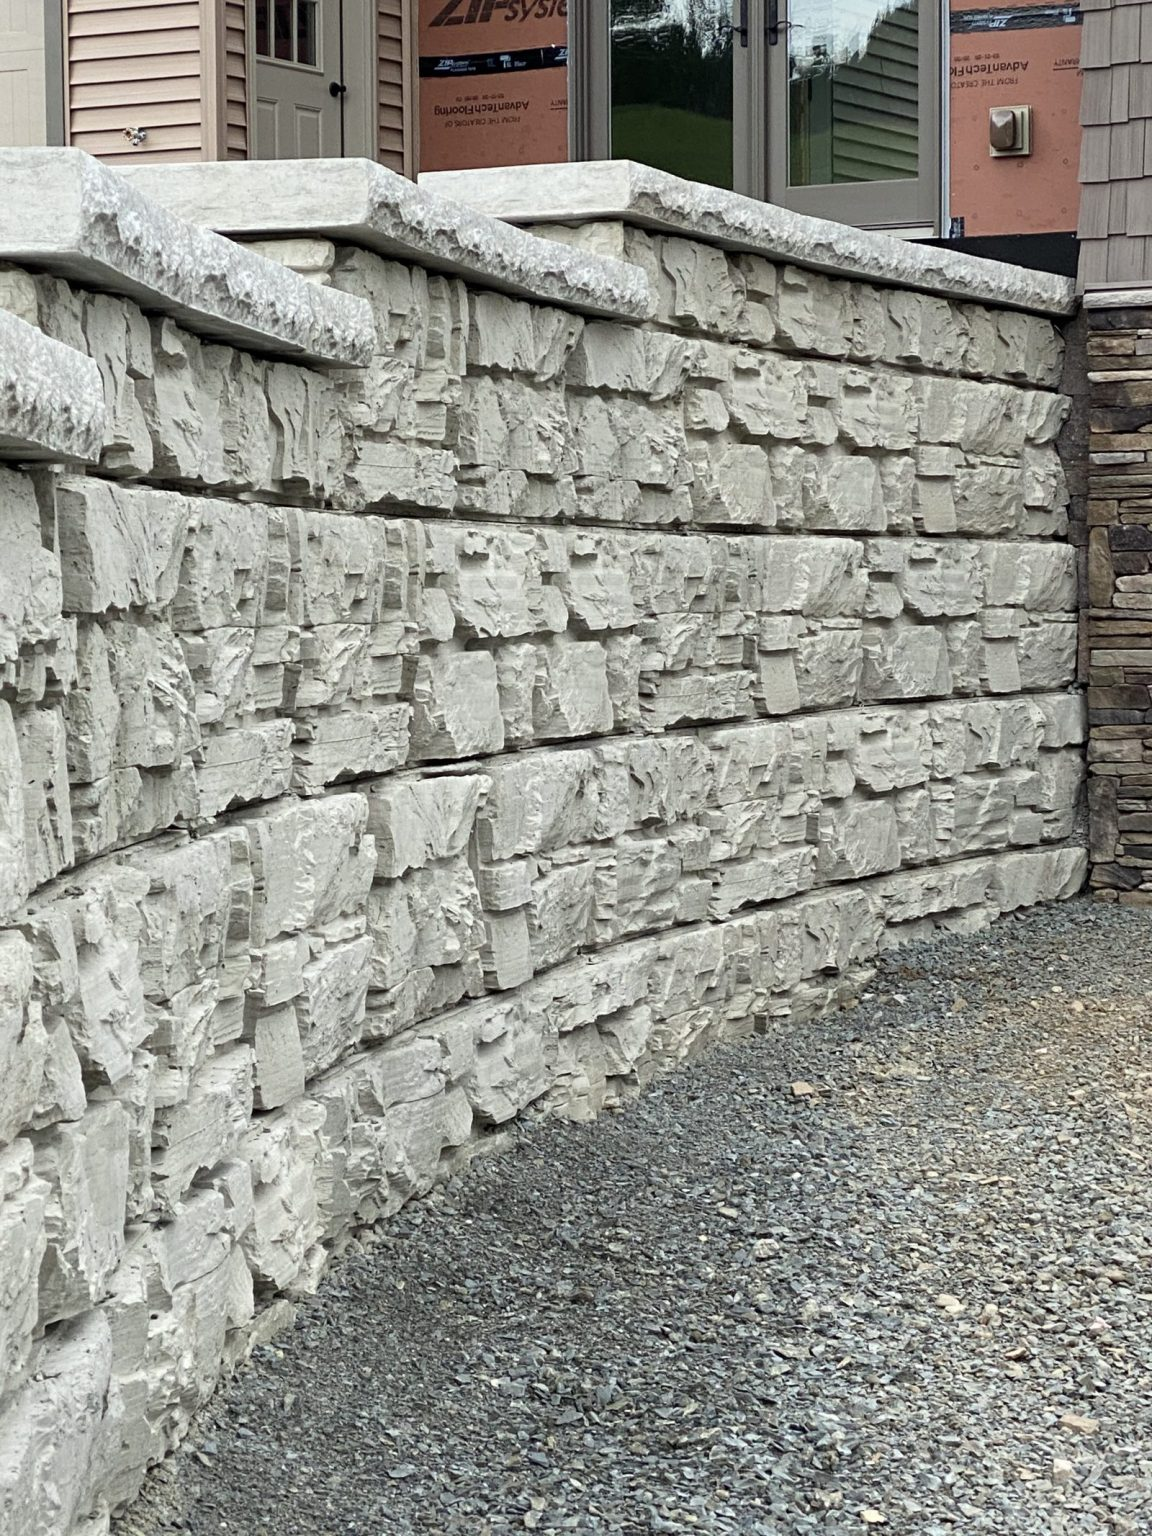 Residential MaxumStone retaining wall showing natural ledge face texture